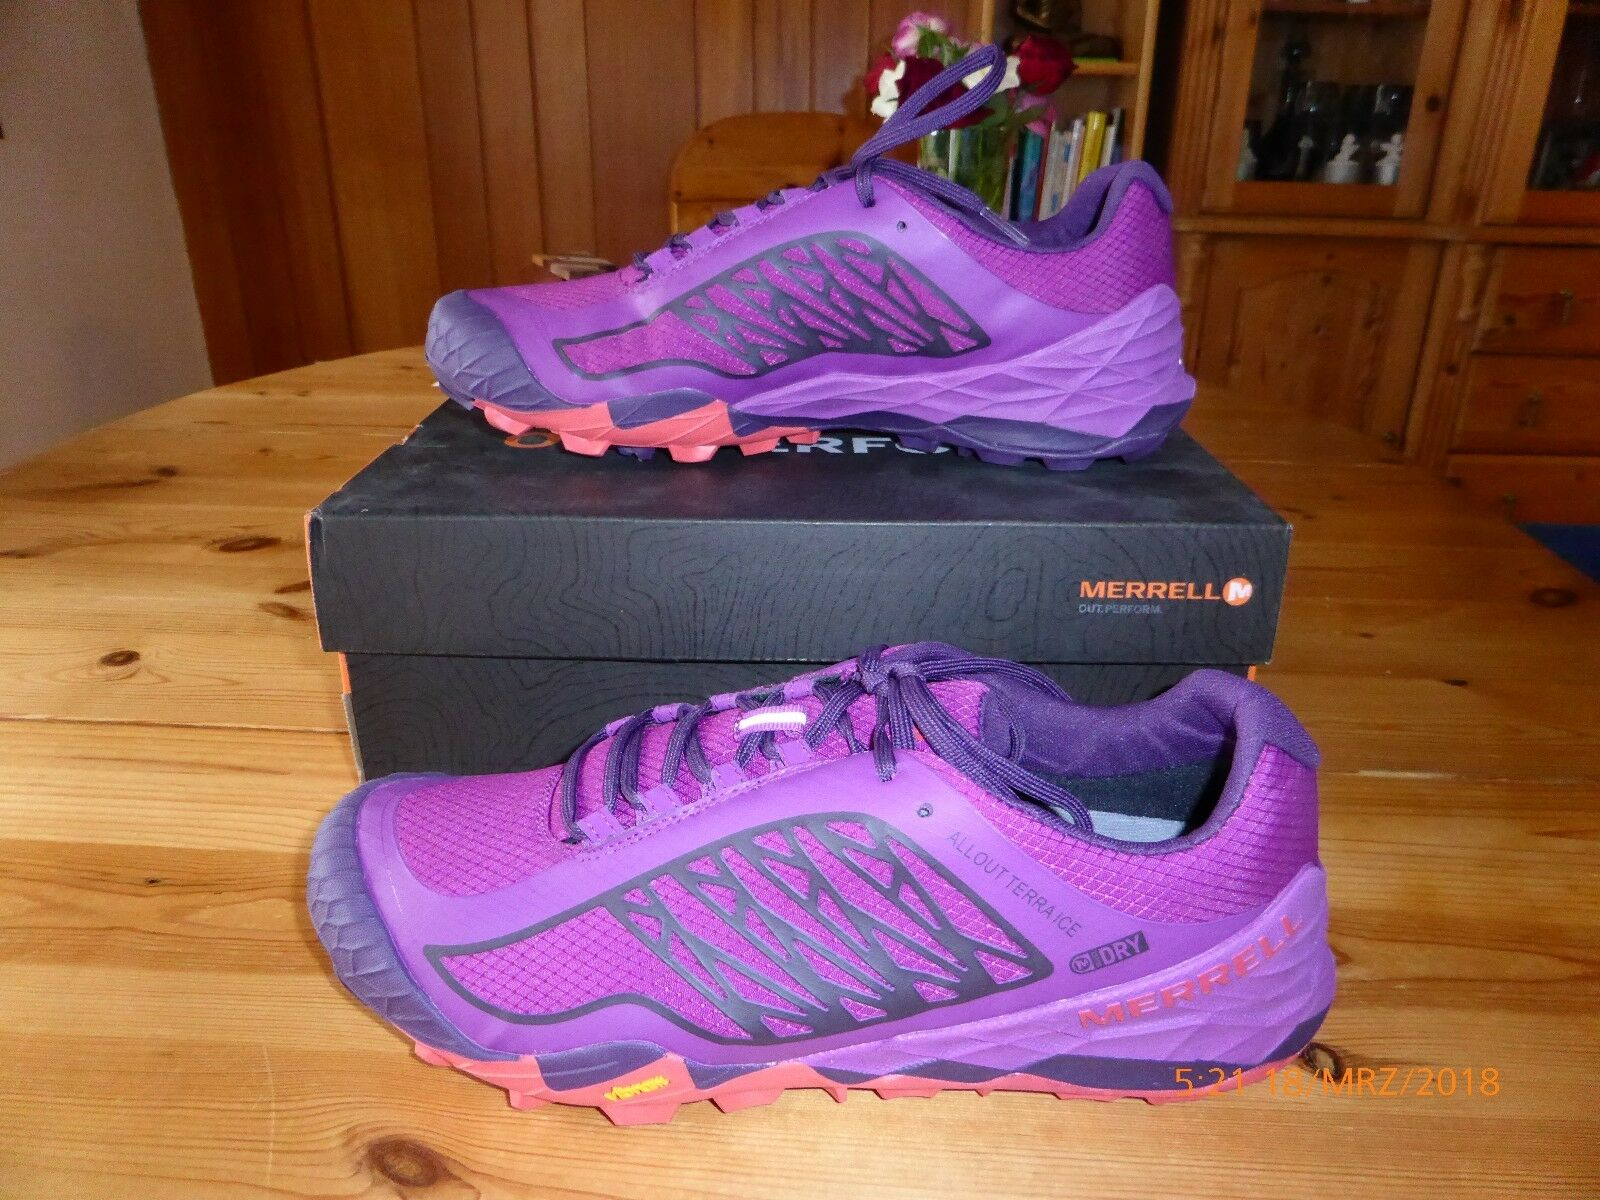 Merell-all out terra ICE-impermeabile-viola-Tg. 42,5 - trailrunning | Consegna veloce